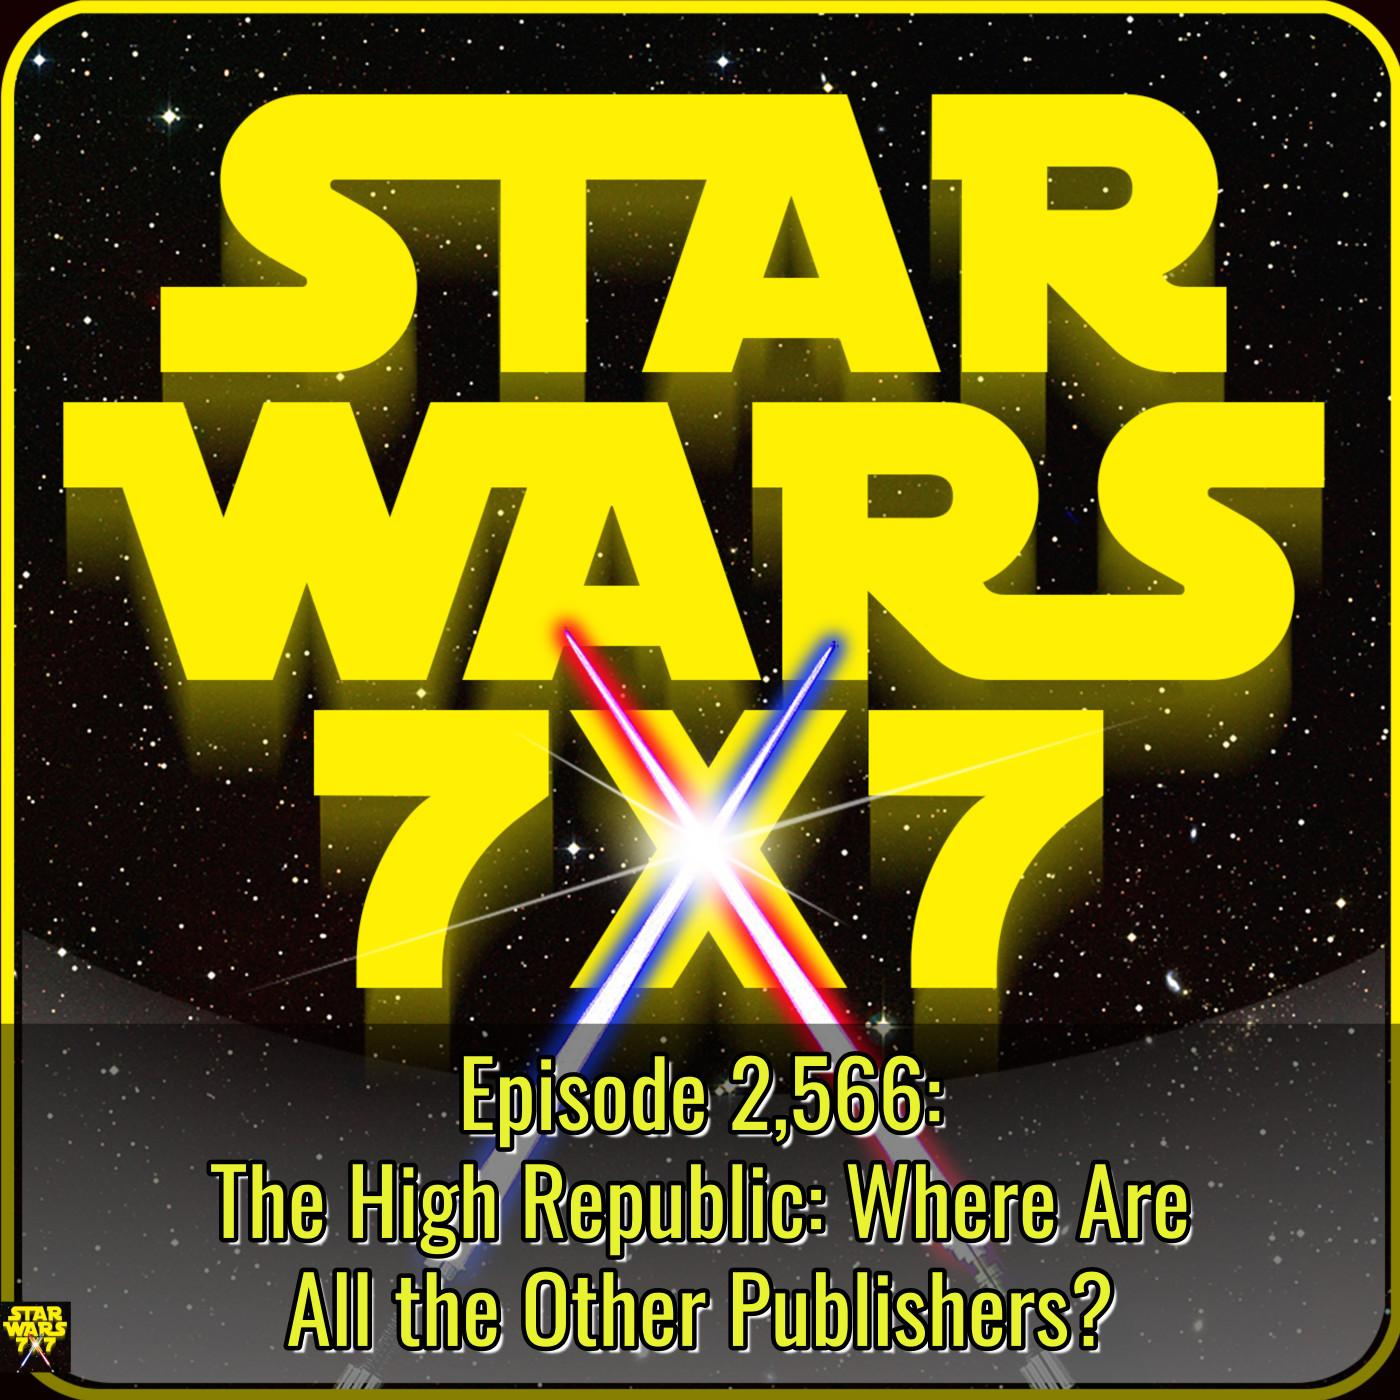 2,566. The High Republic: Where Are All the Other Publishers?